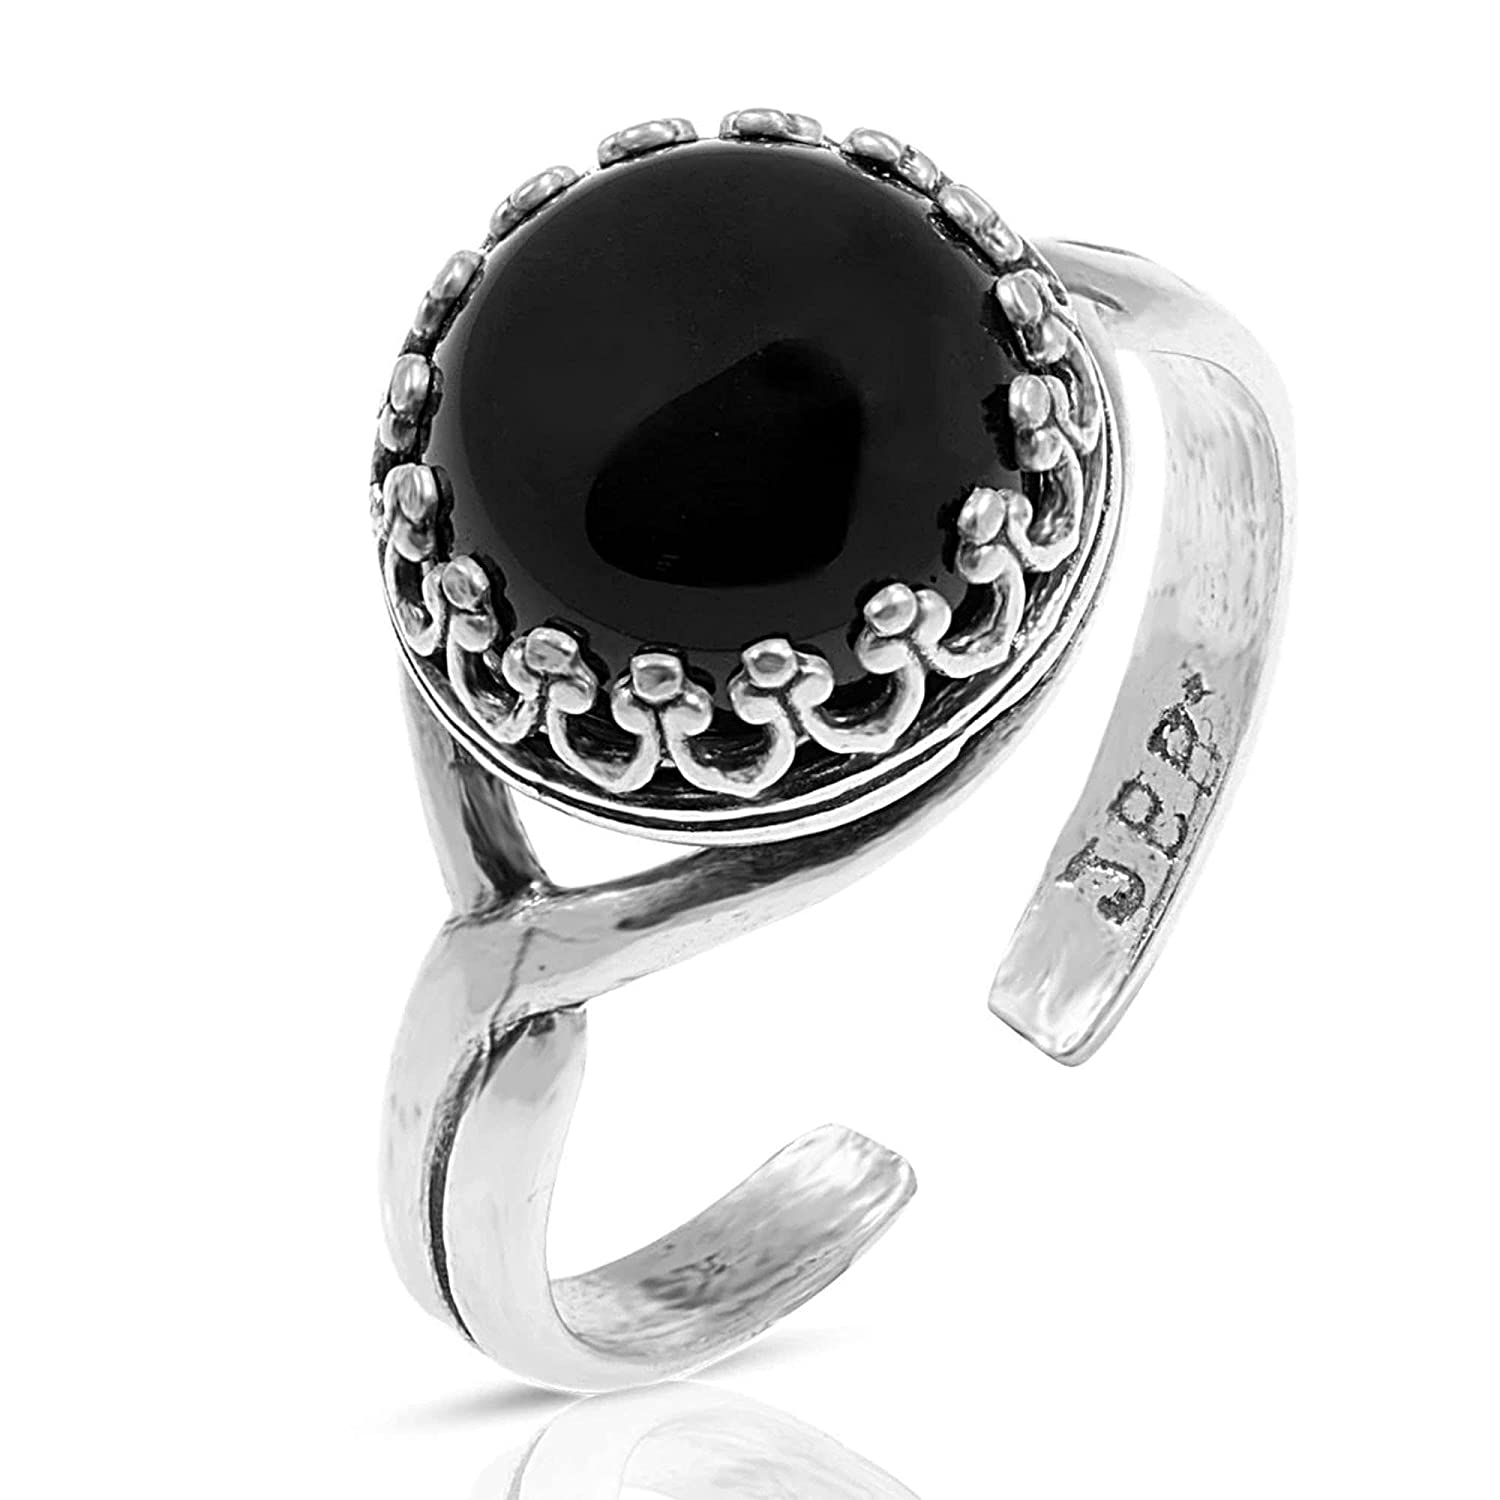 925 Sterling Silver Natural Onyx Ring Leo Style Fresno Mall Popular brand in the world - Vintage Decemb